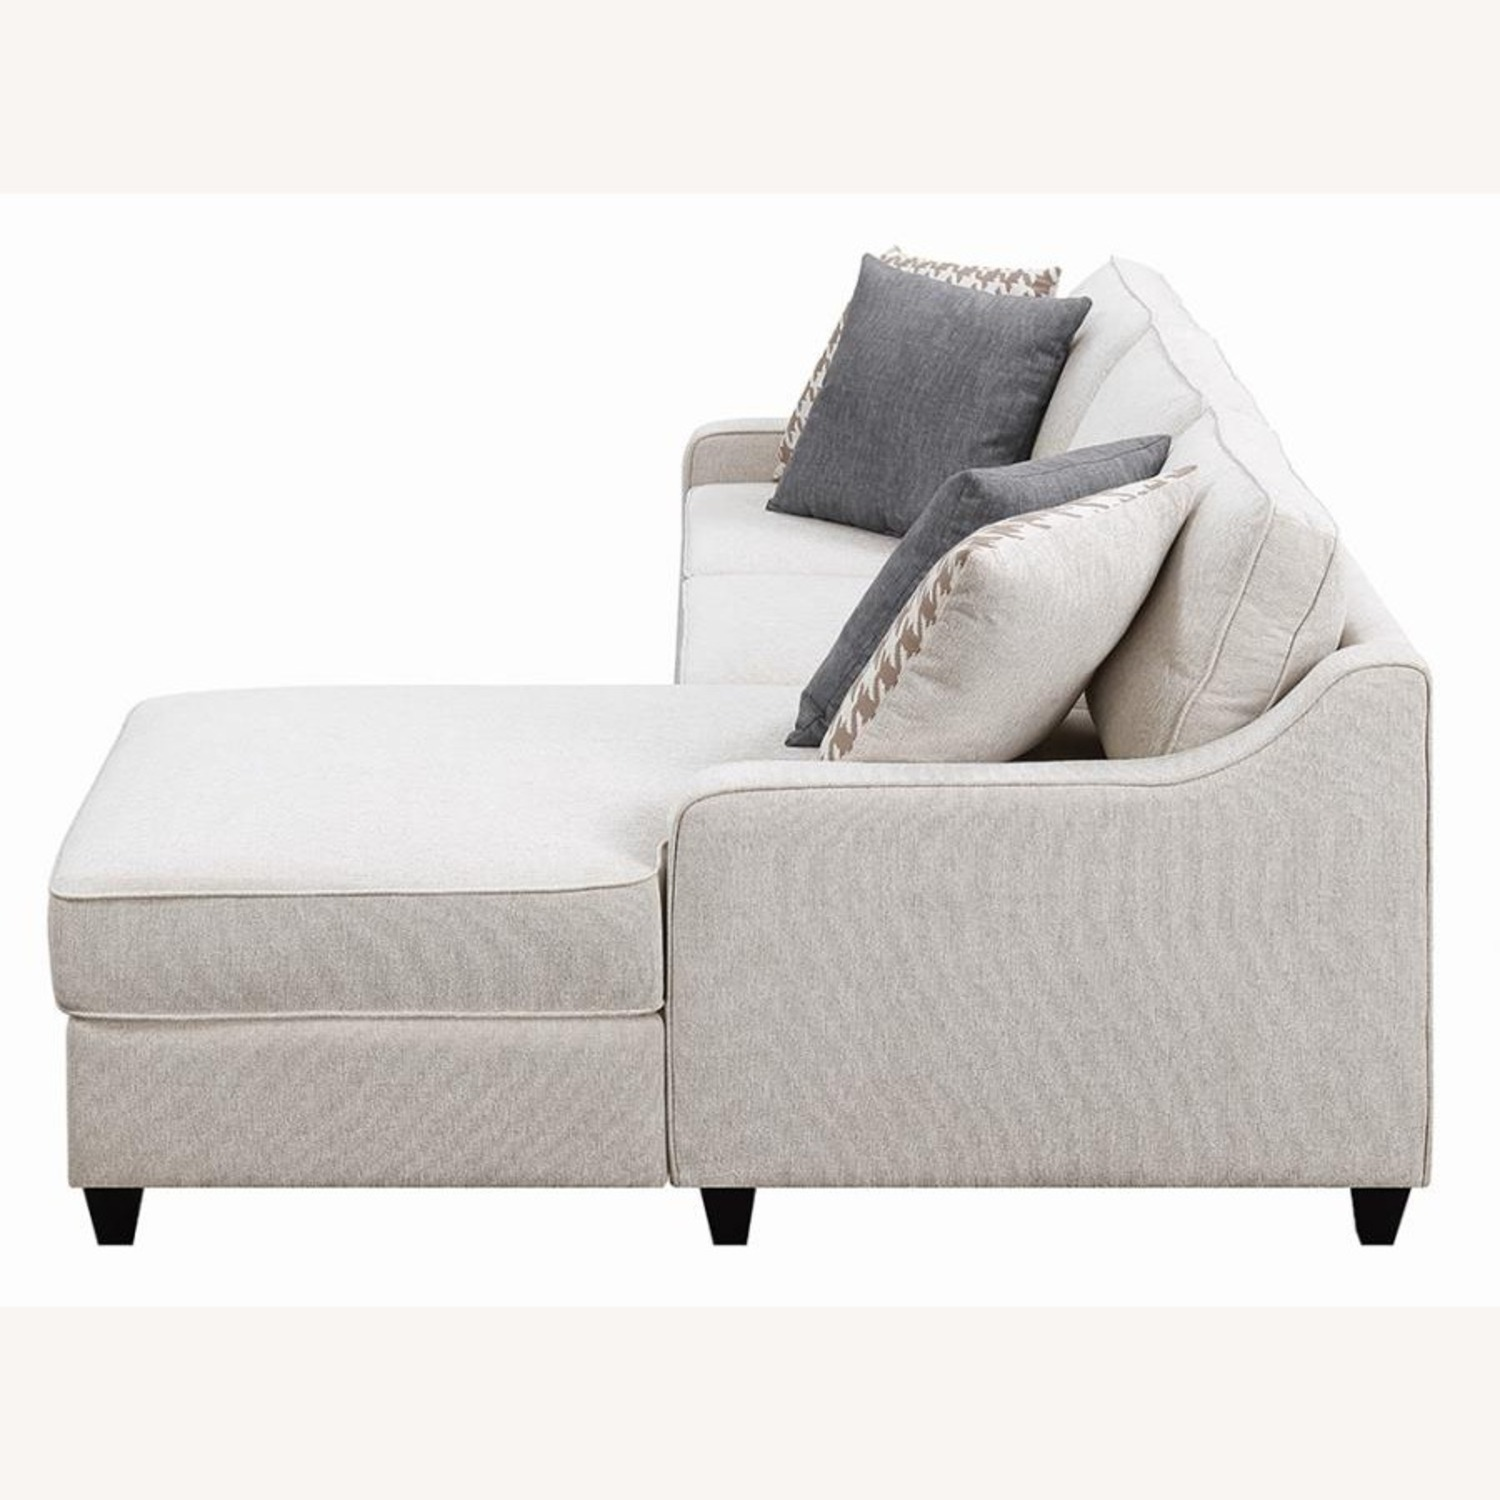 Sectional In Cream Chevron Dobby Upholstery - image-2